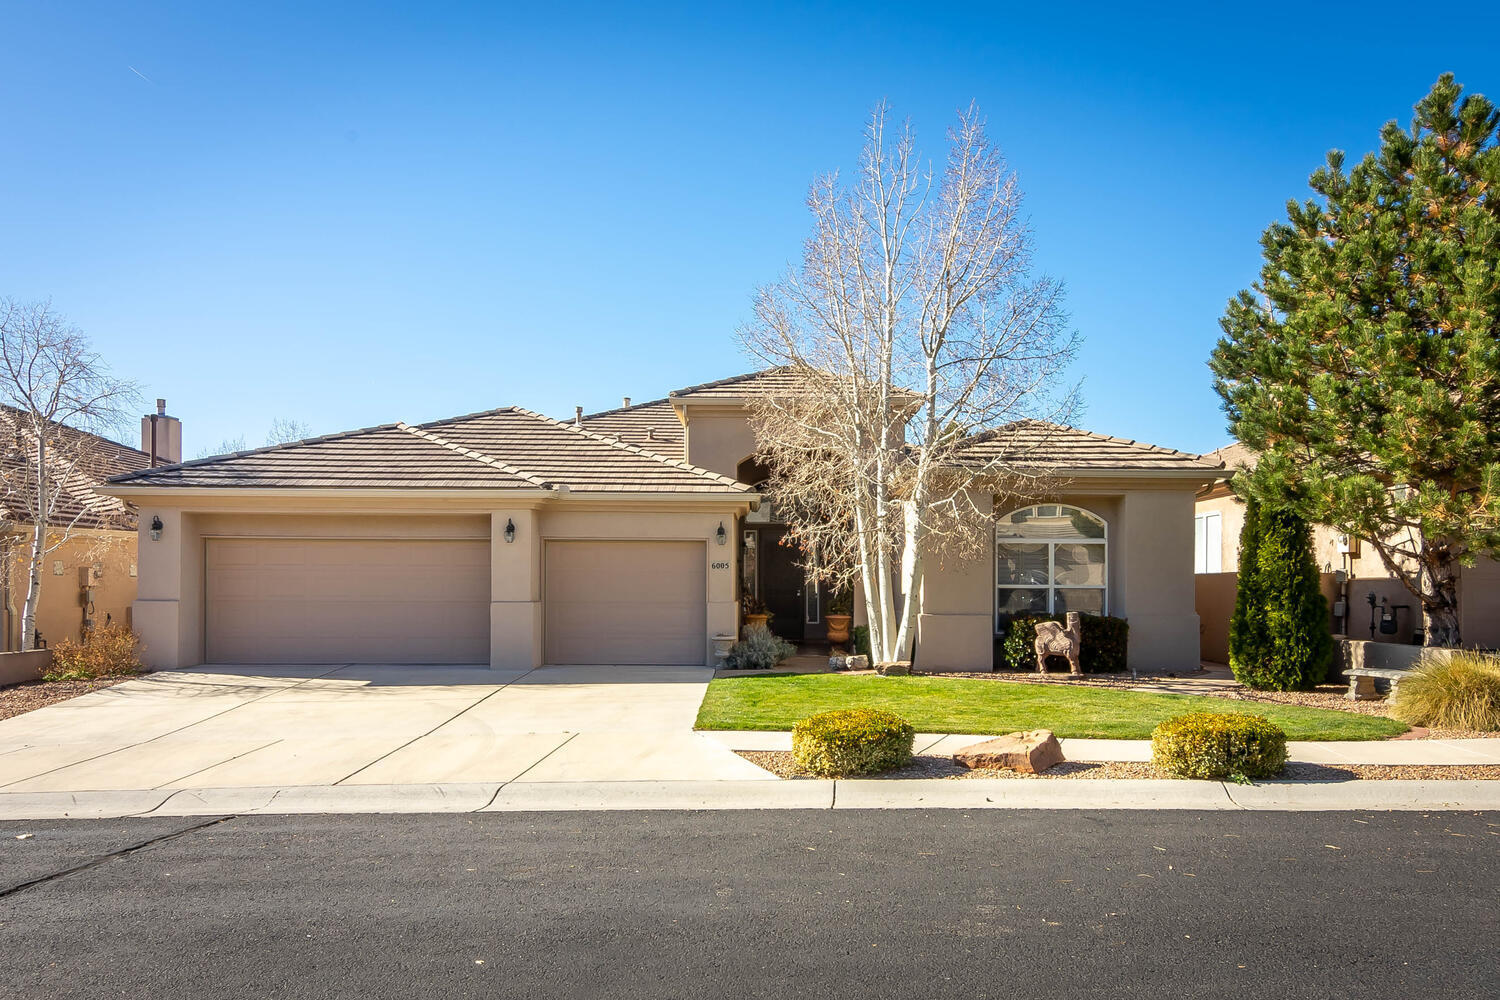 6005 WILDFLOWER TRAIL NE, ALBUQUERQUE, NM 87111